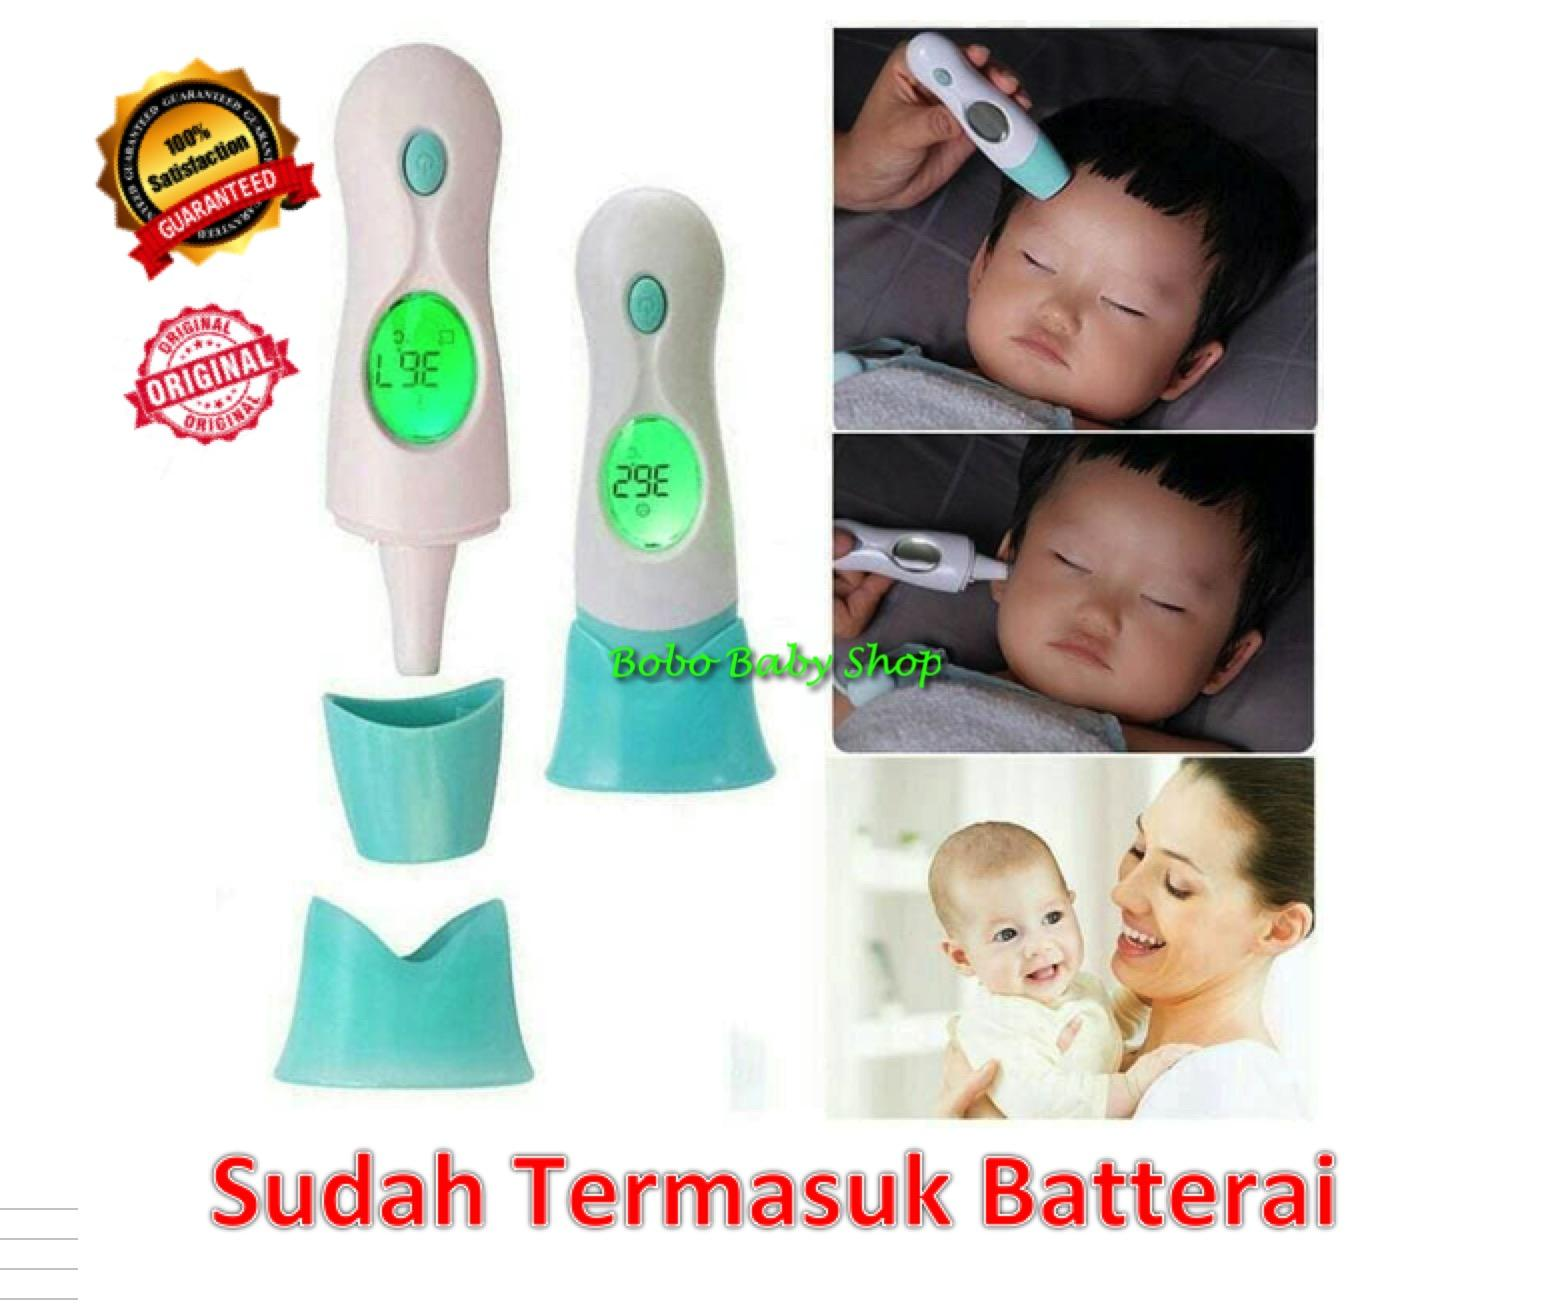 Thermometer Digital Baby It-903 Termometer 8 In 1 Anak Dan Bayi By Bobo Baby Shops